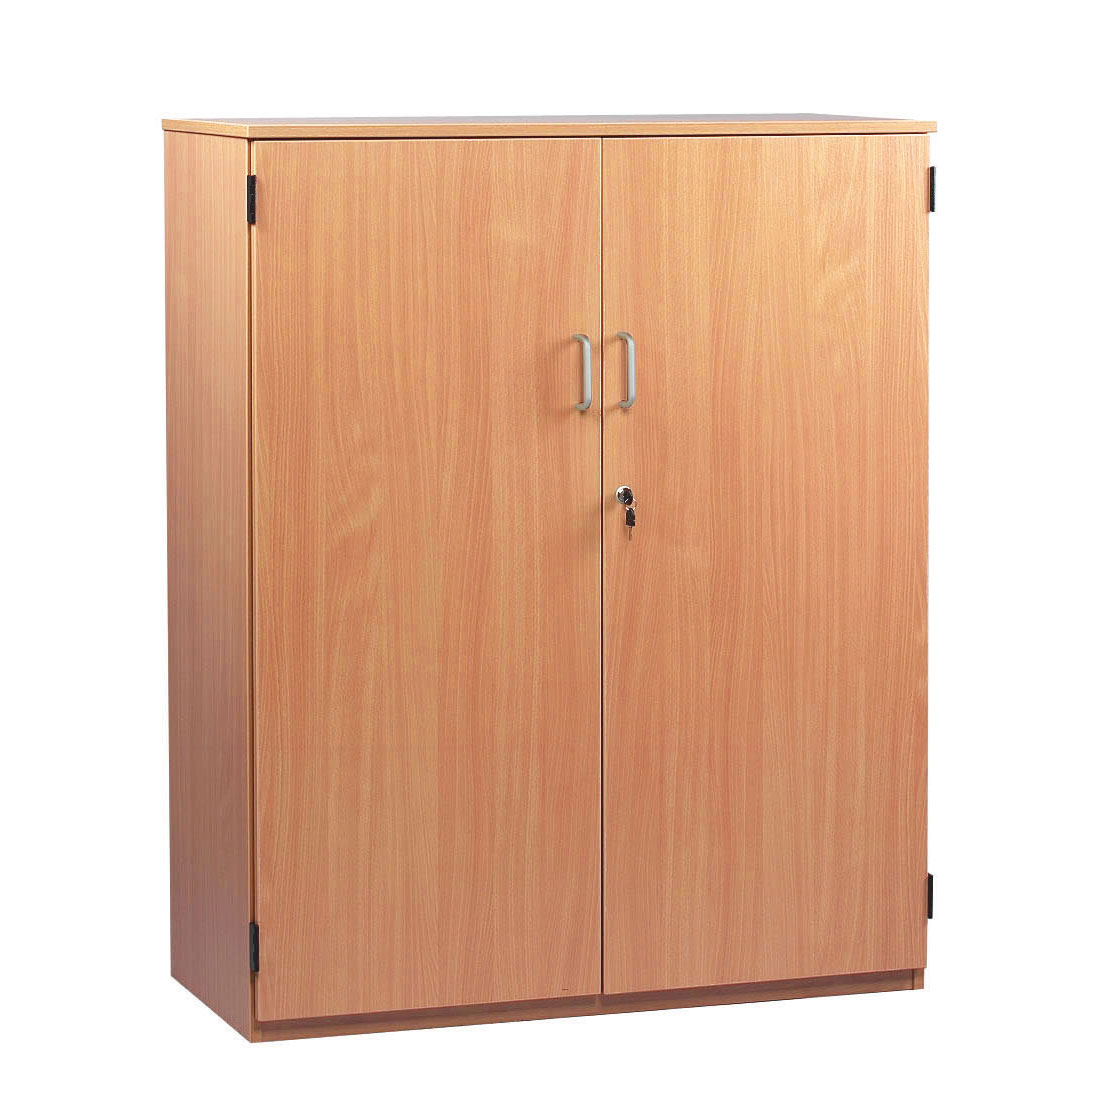 Buy Cupboard Buy School Storage Cupboard Height 1250mm With Lockable